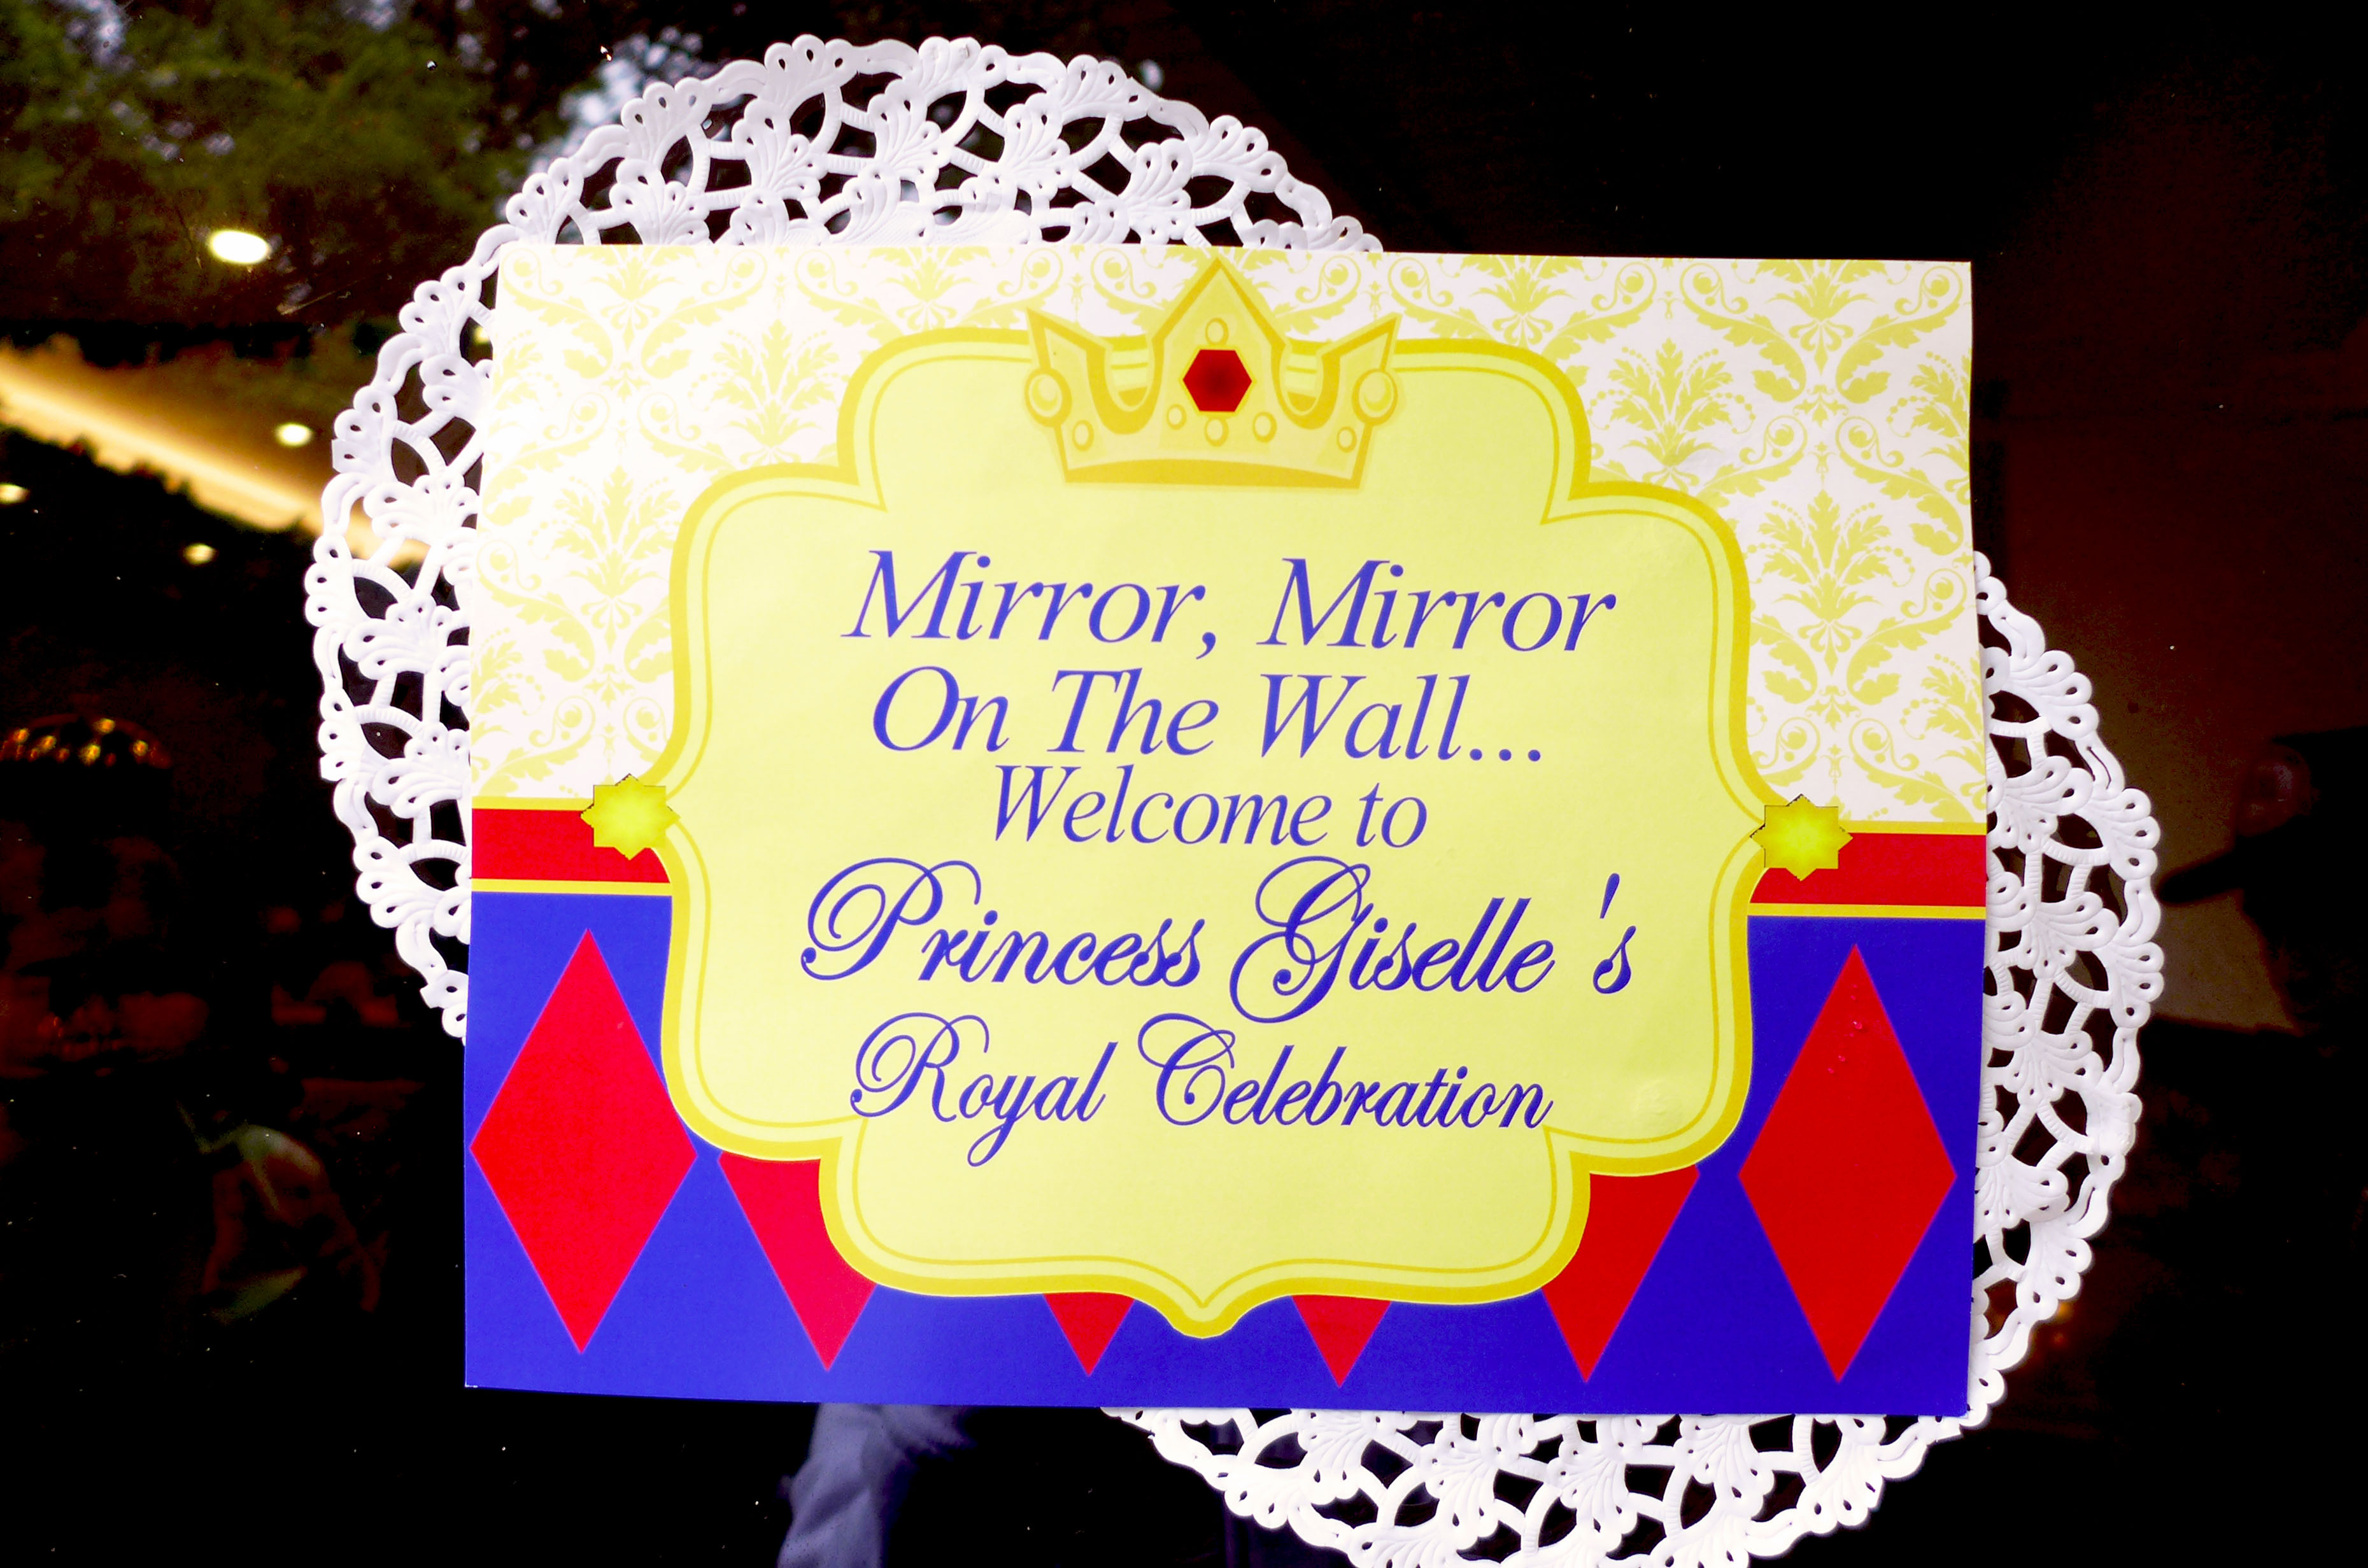 Snow white themed birthday party whats the not so secret password mirror mirror on the wall amipublicfo Choice Image